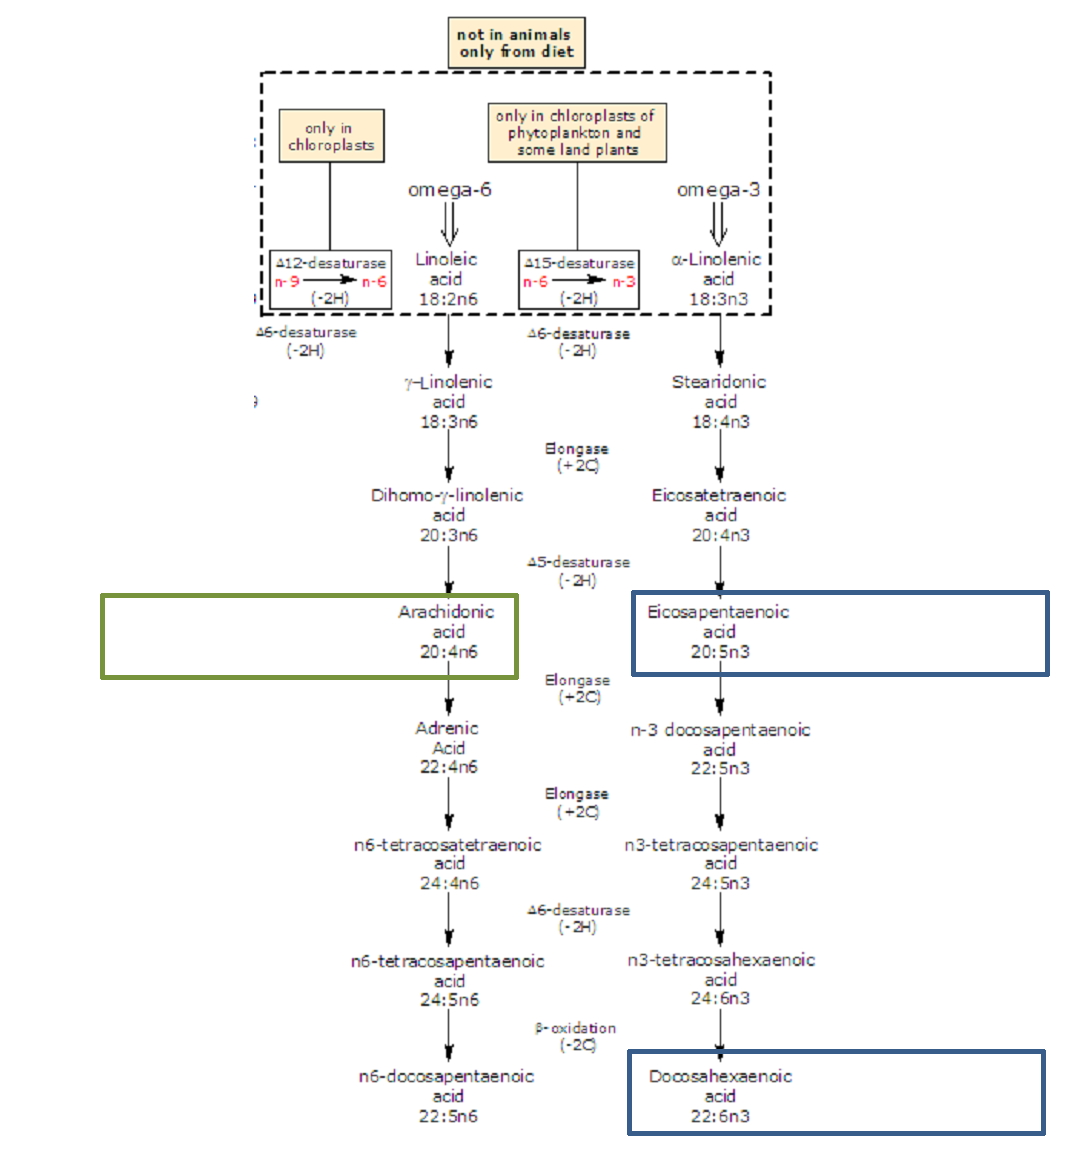 metabolic pathway of omega 3 and omega 6